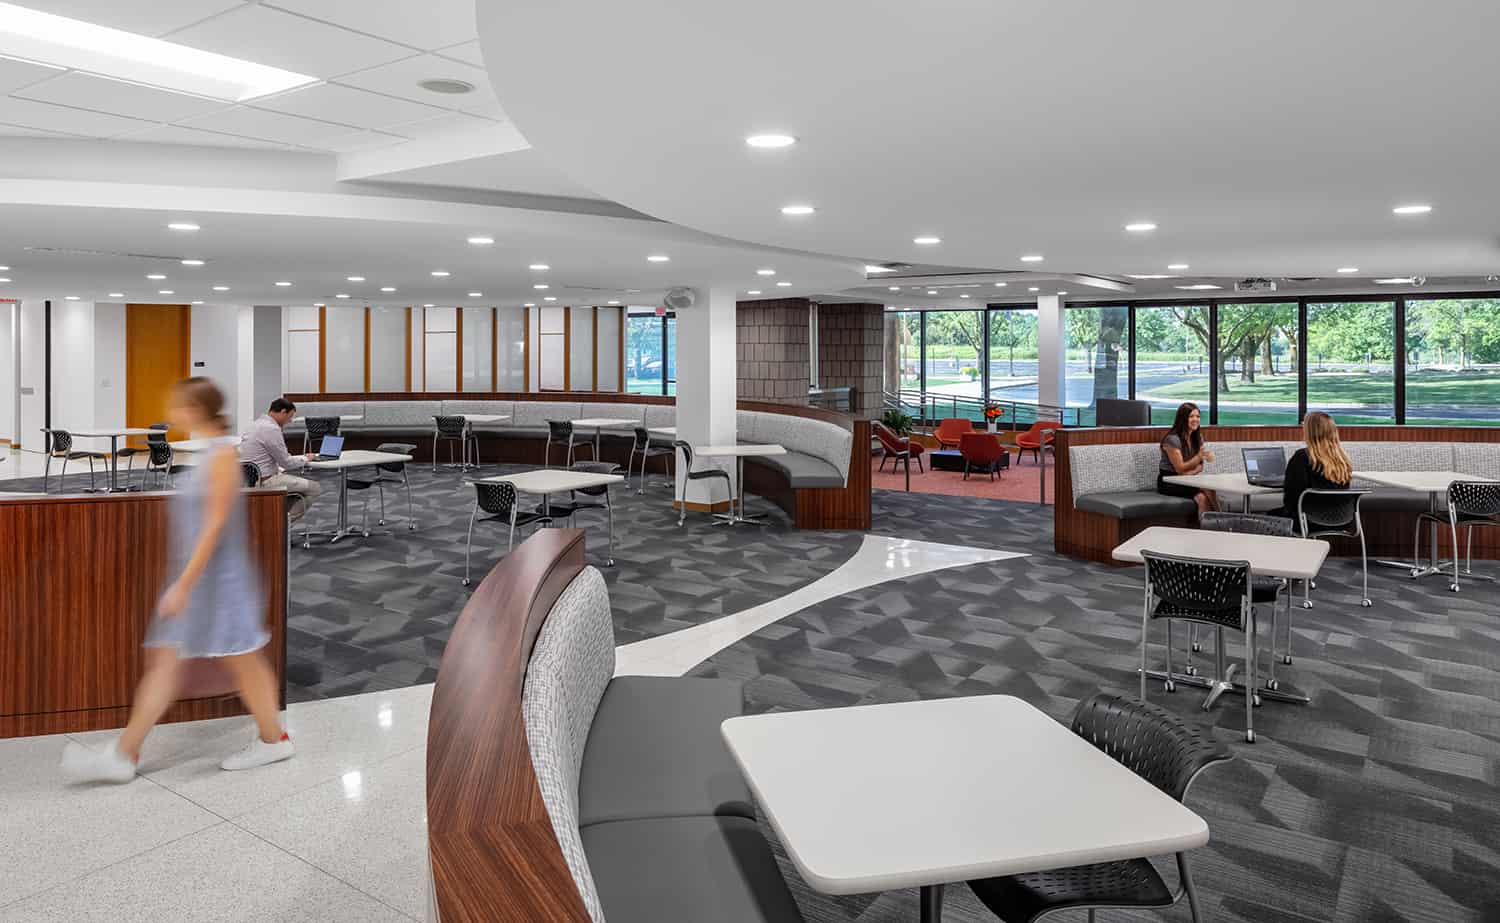 Open collaboration space with many drop-in booths and tables.